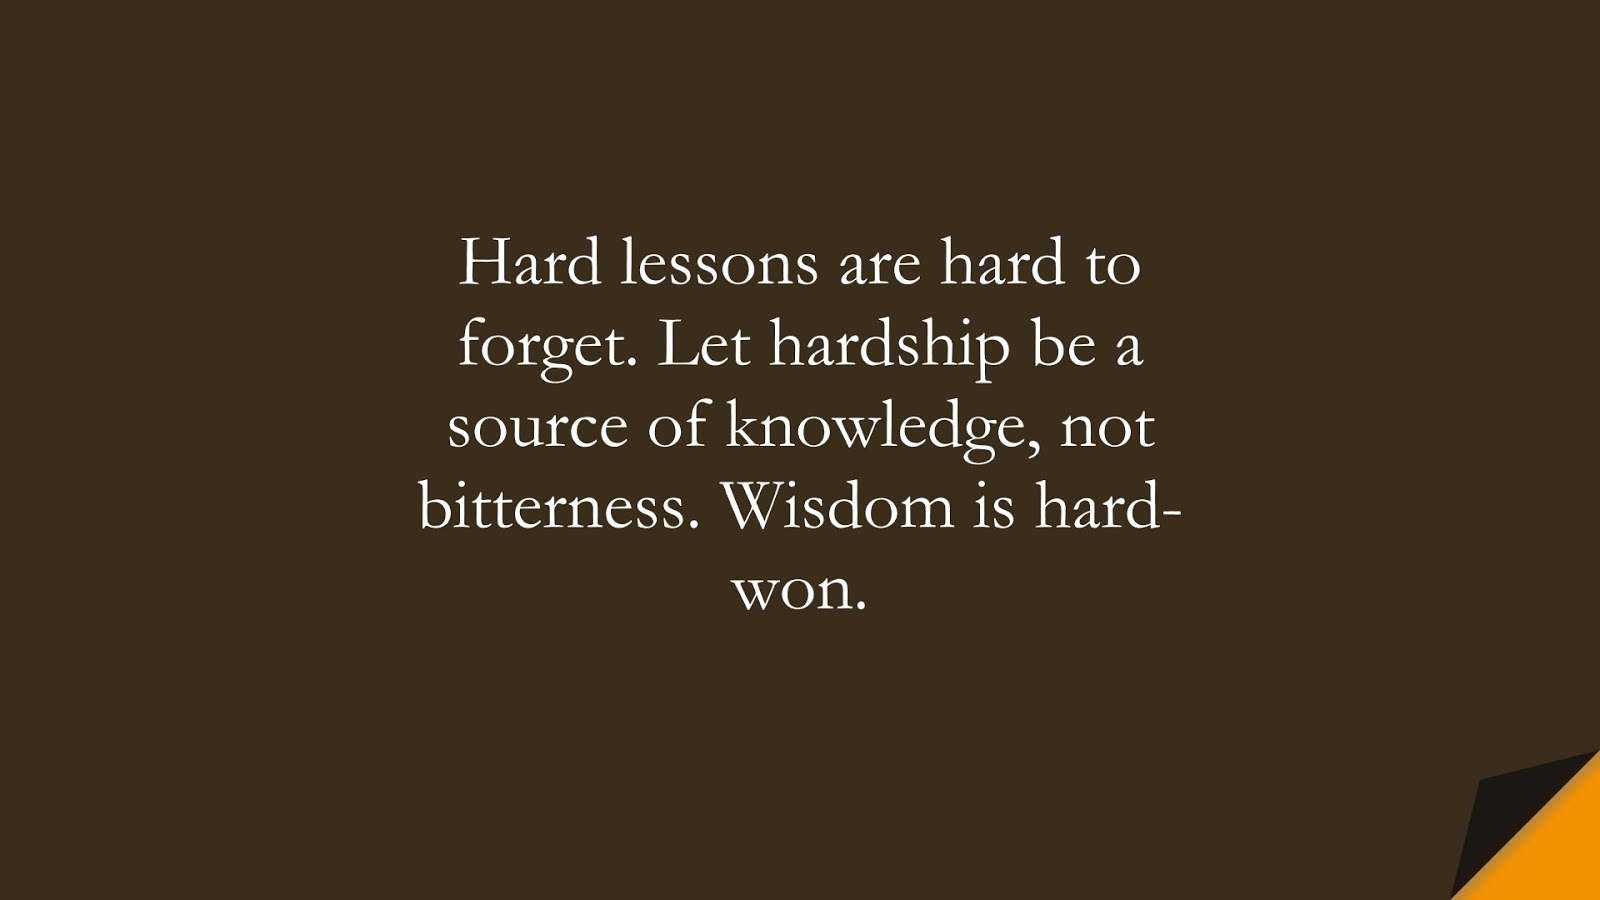 Hard lessons are hard to forget. Let hardship be a source of knowledge, not bitterness. Wisdom is hard-won.FALSE